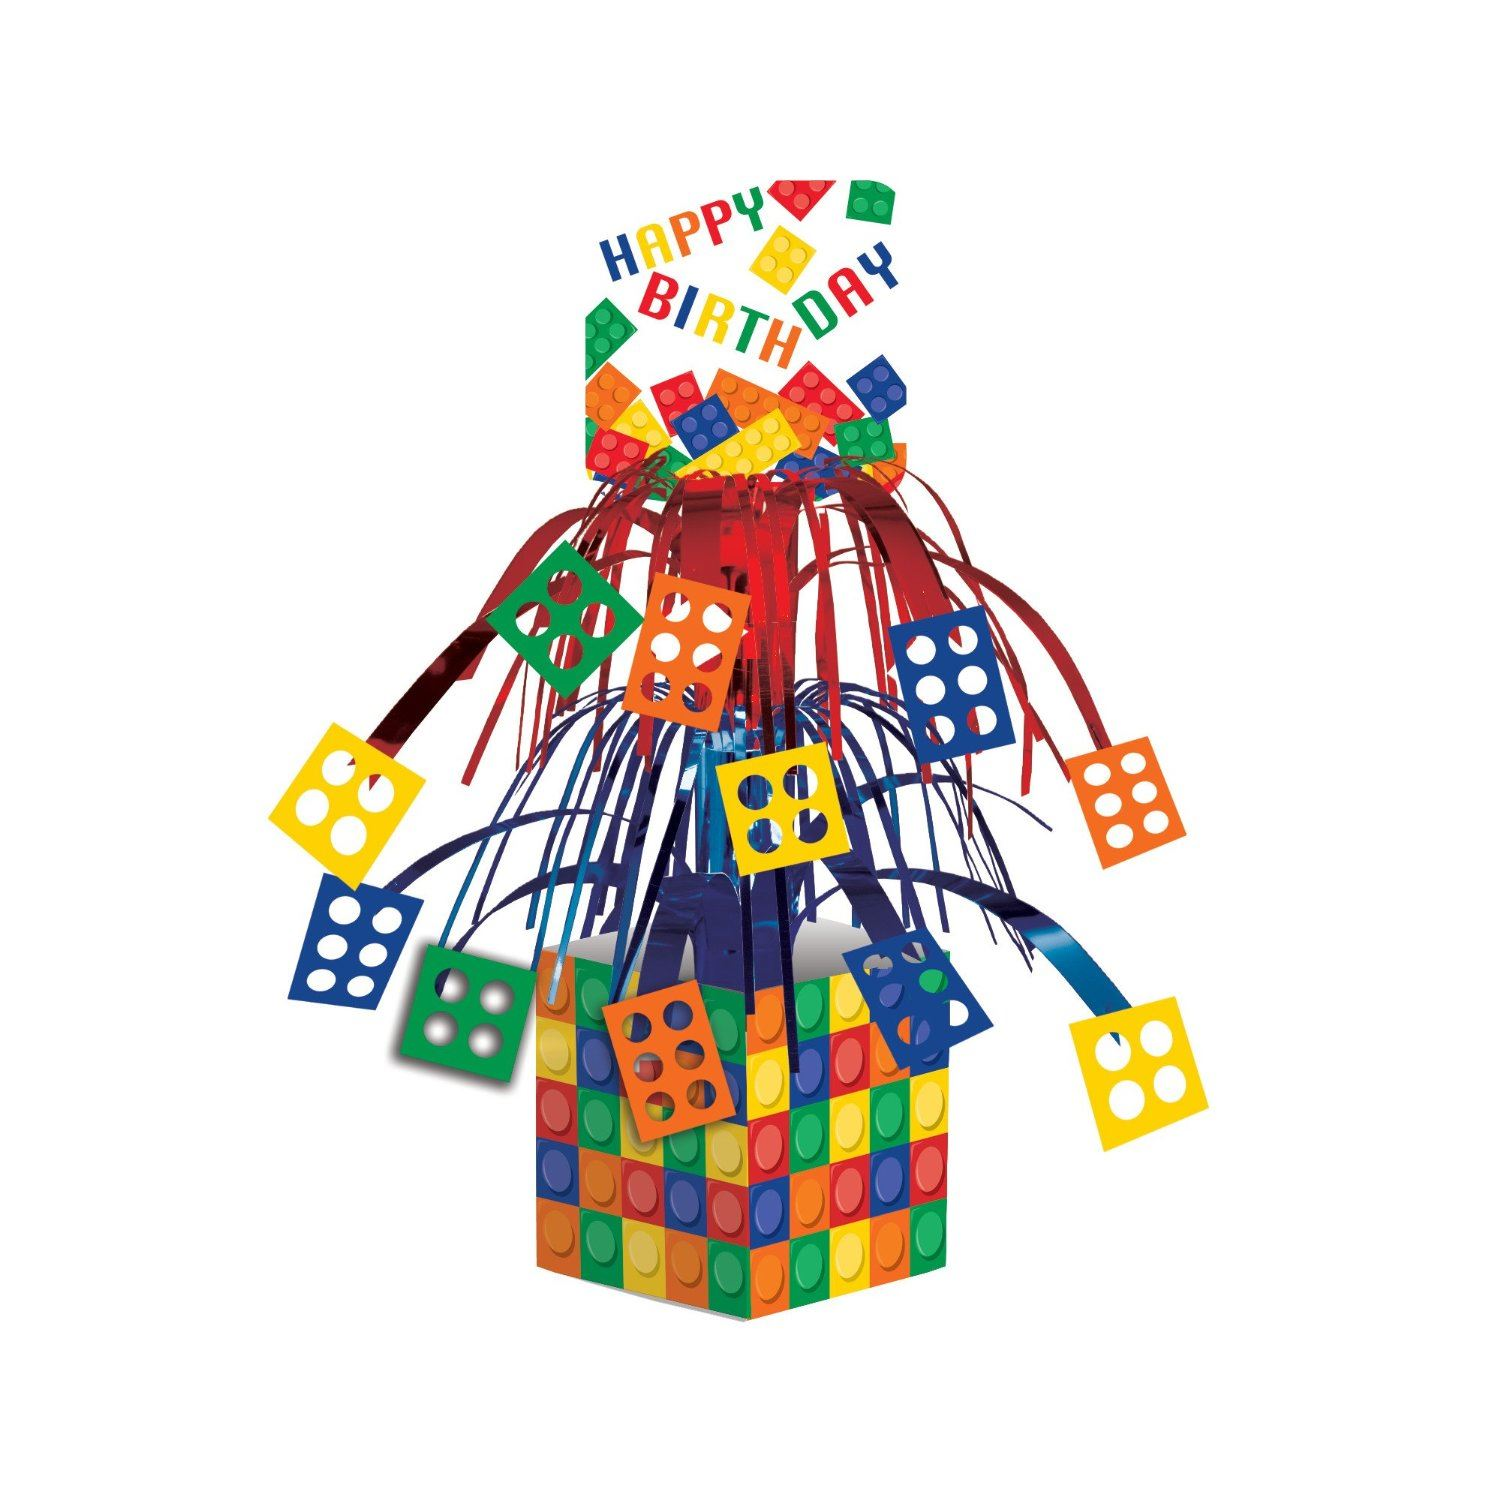 Block party lego supplies tableware decorations party for Decoration lego